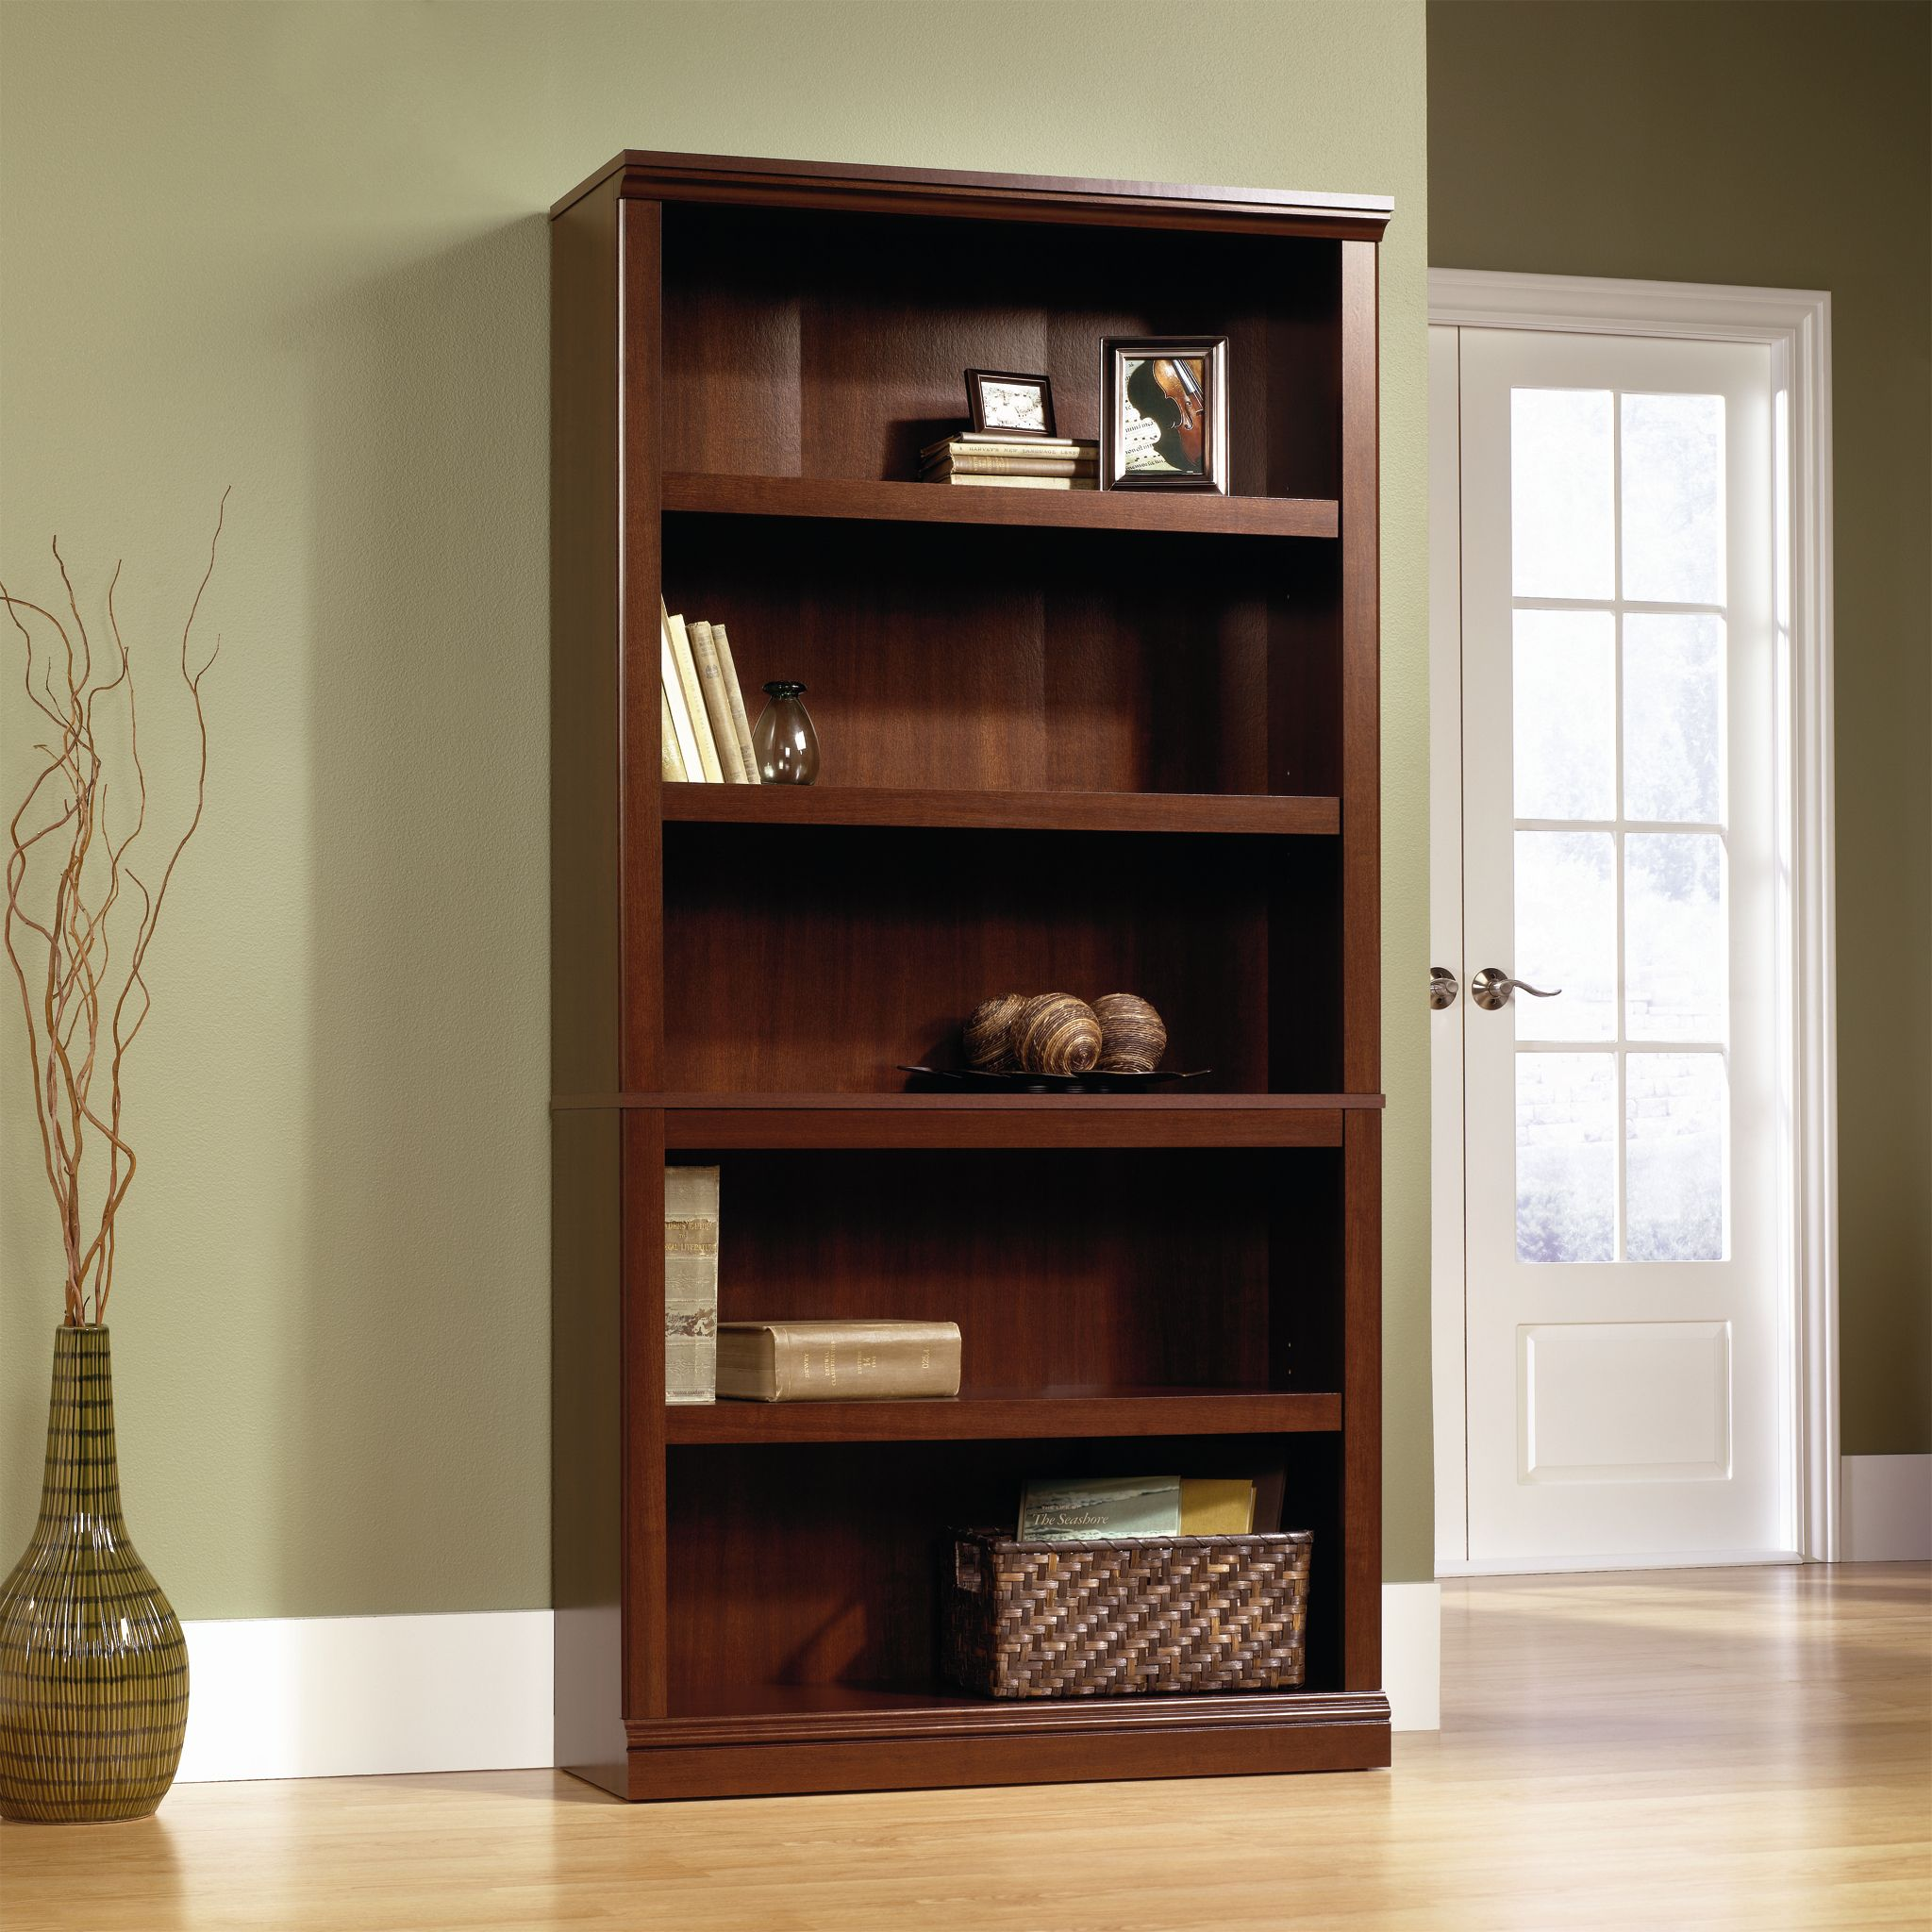 Sauder 5-Shelf Bookcase, Select Cherry Finish by Sauder